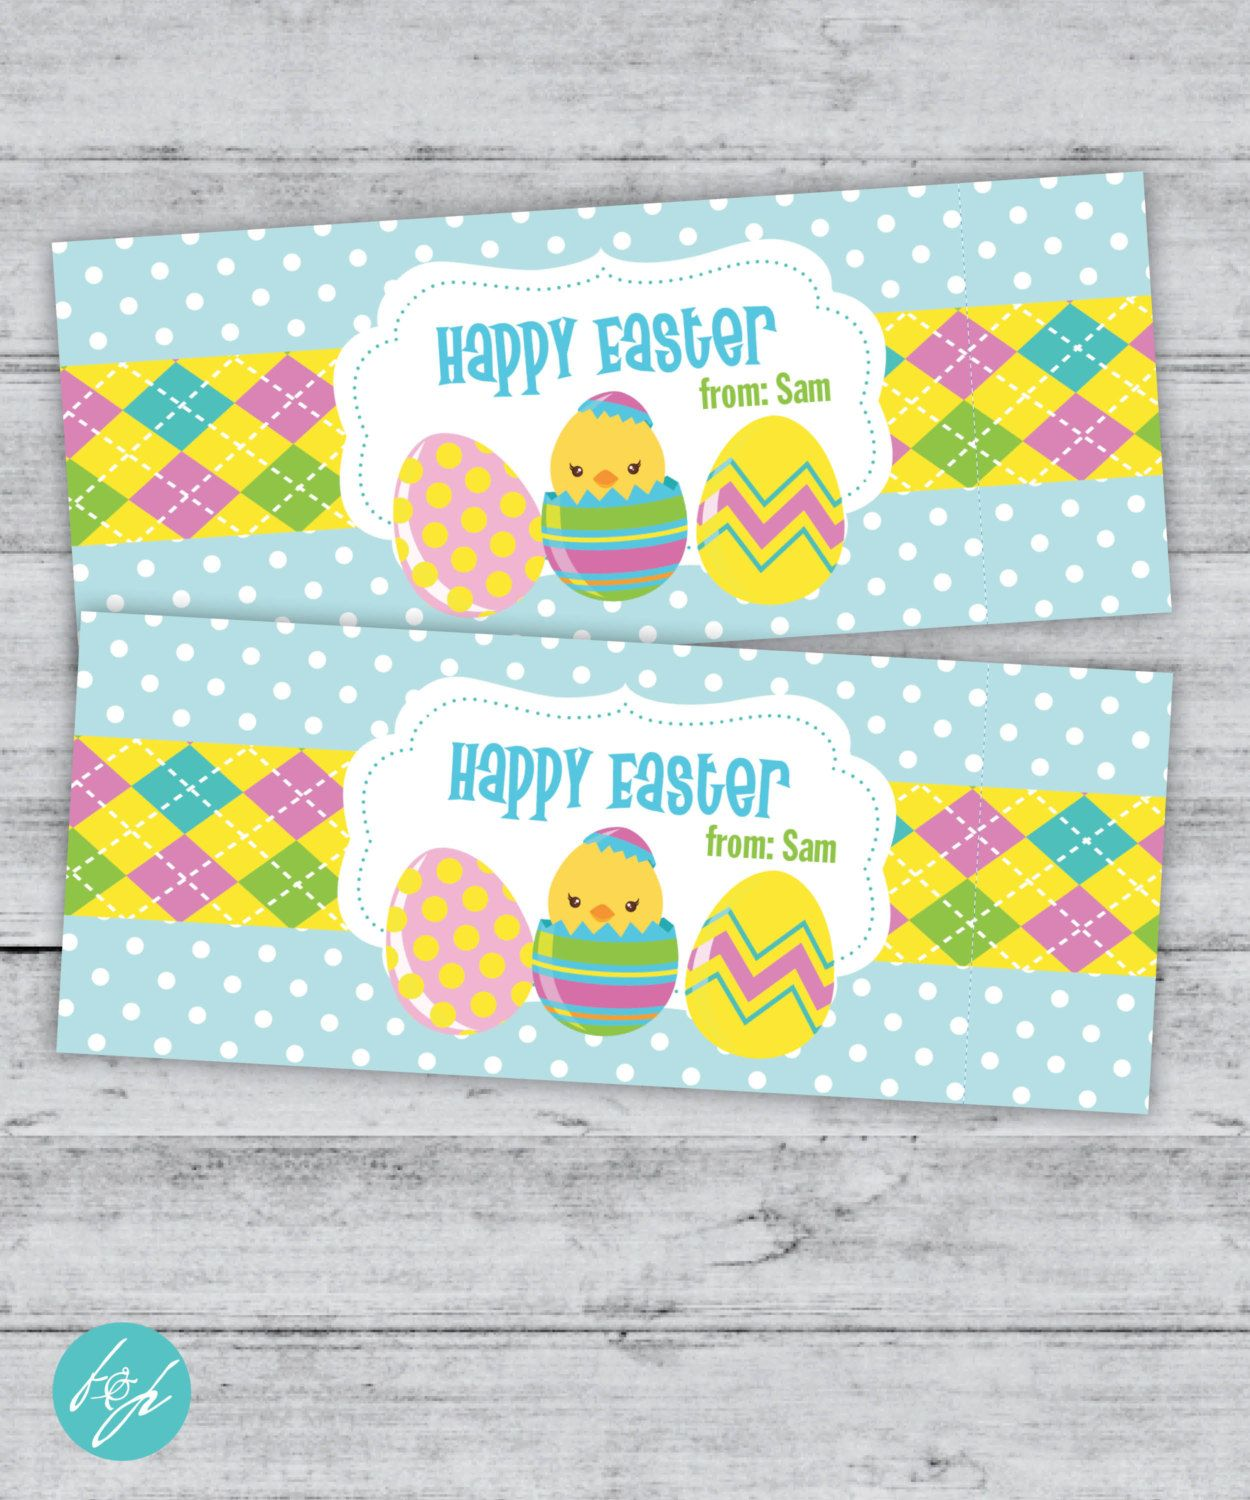 Easter Bag Topper, Treat Bag, Party Favor Tag, Personalized Bag Toppers, Printable Tags, Printable Easter Tag, Bag Toppers, DIGITAL FILE by FlairandPaper on Etsy